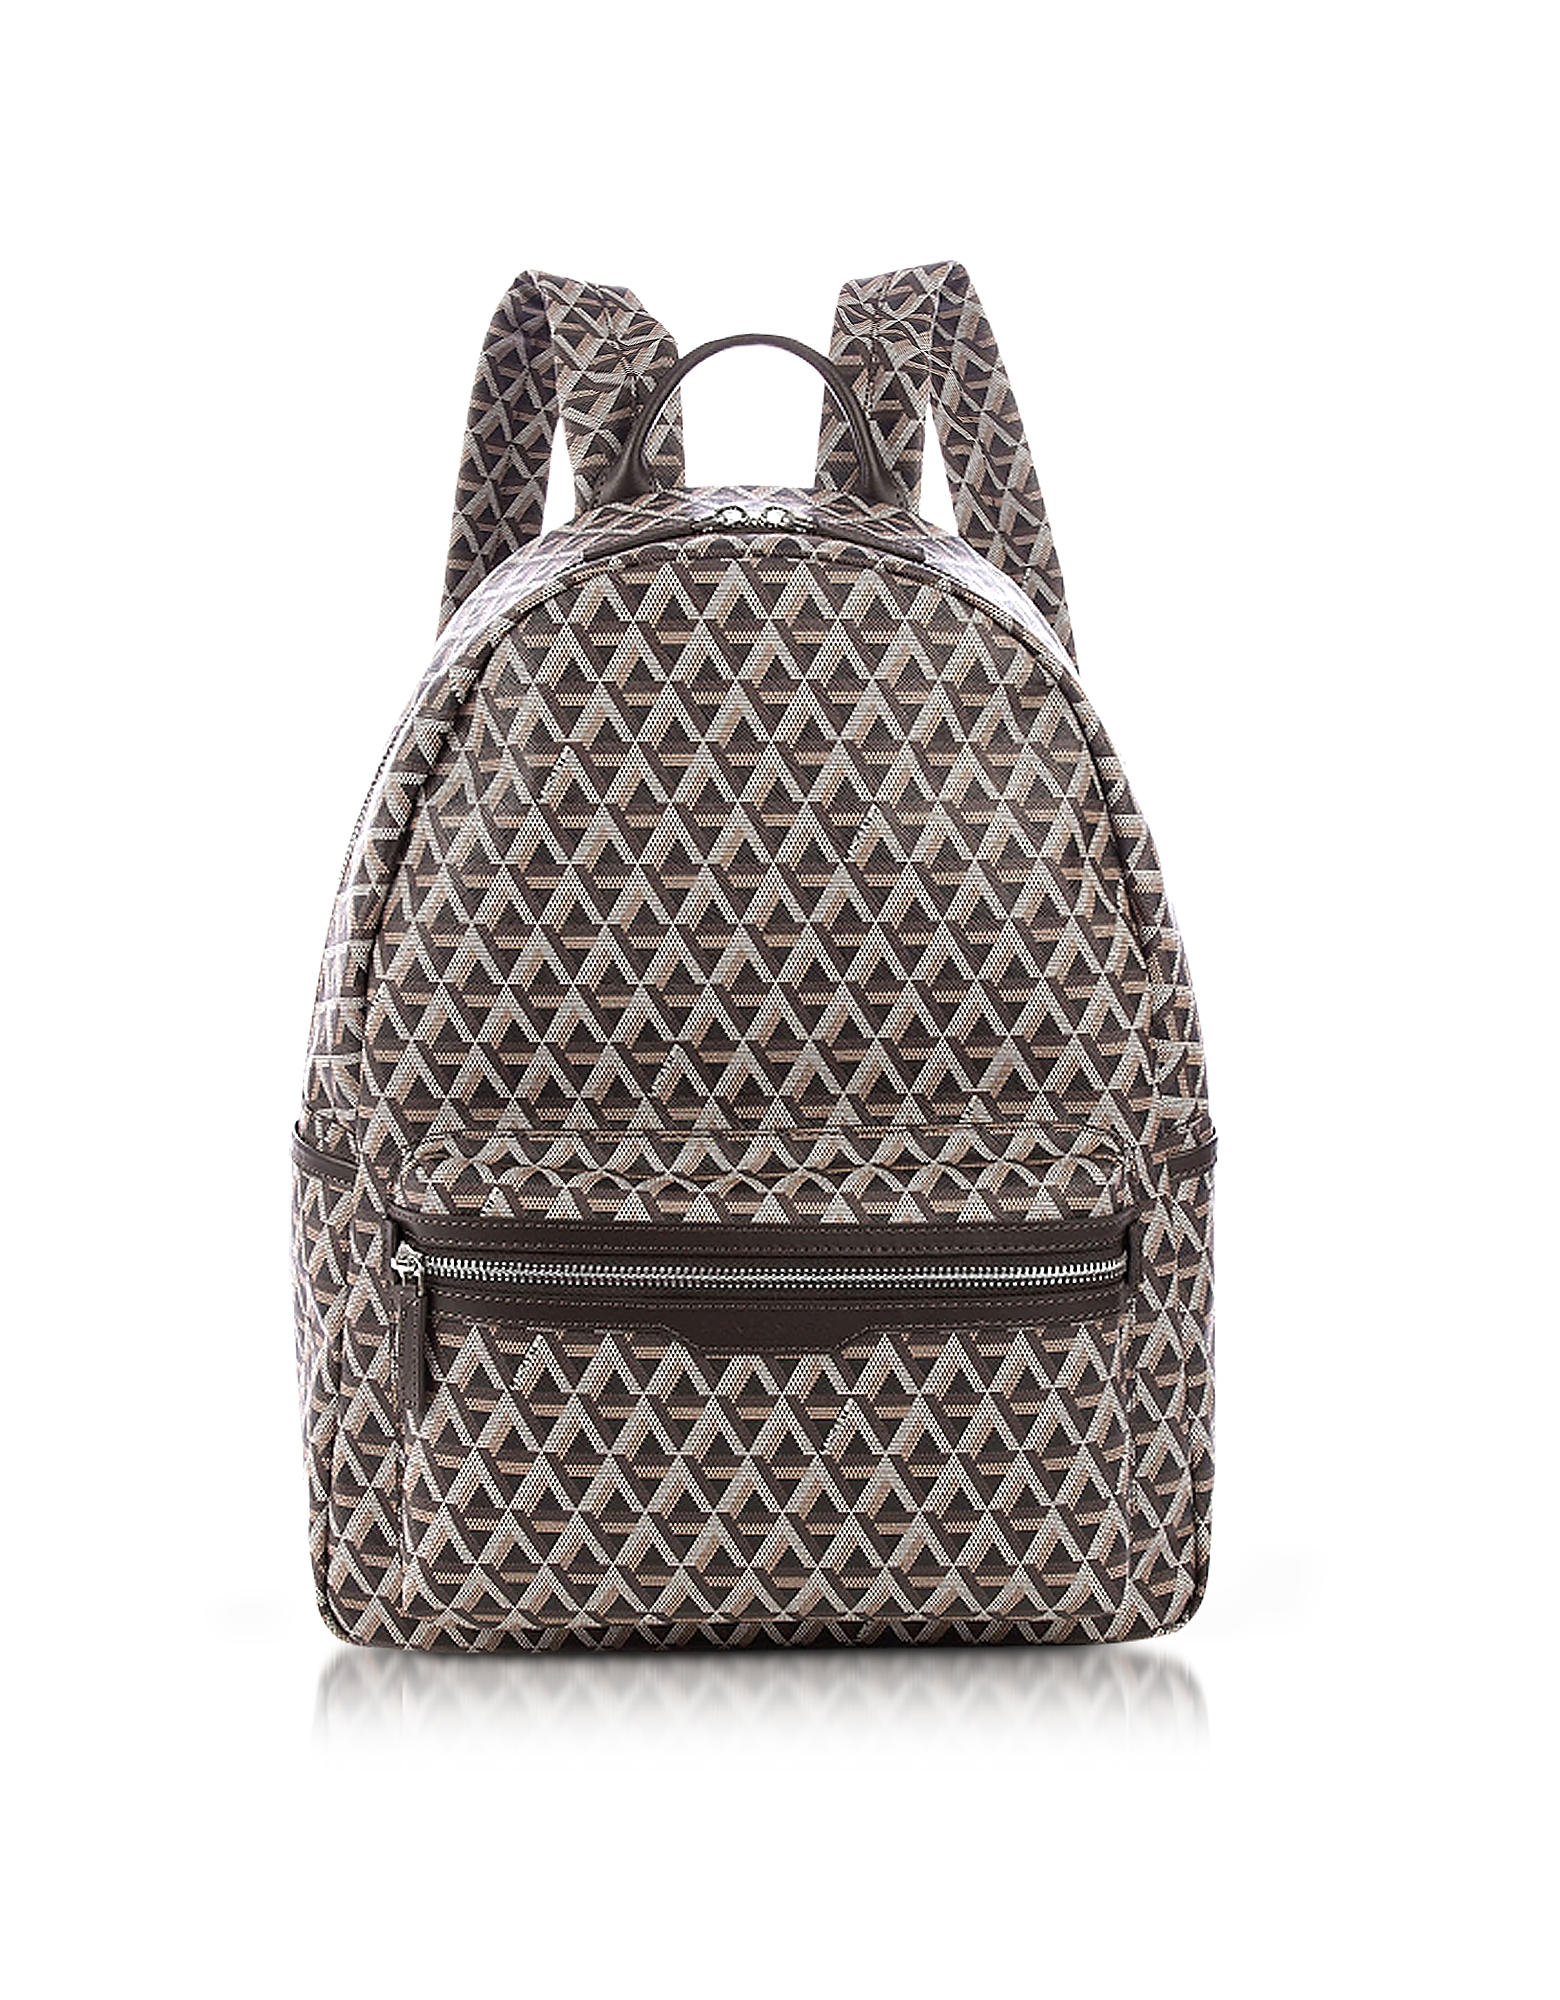 Lancaster Paris Backpacks, Ikon Brown Coated Canvas Men's Backpack